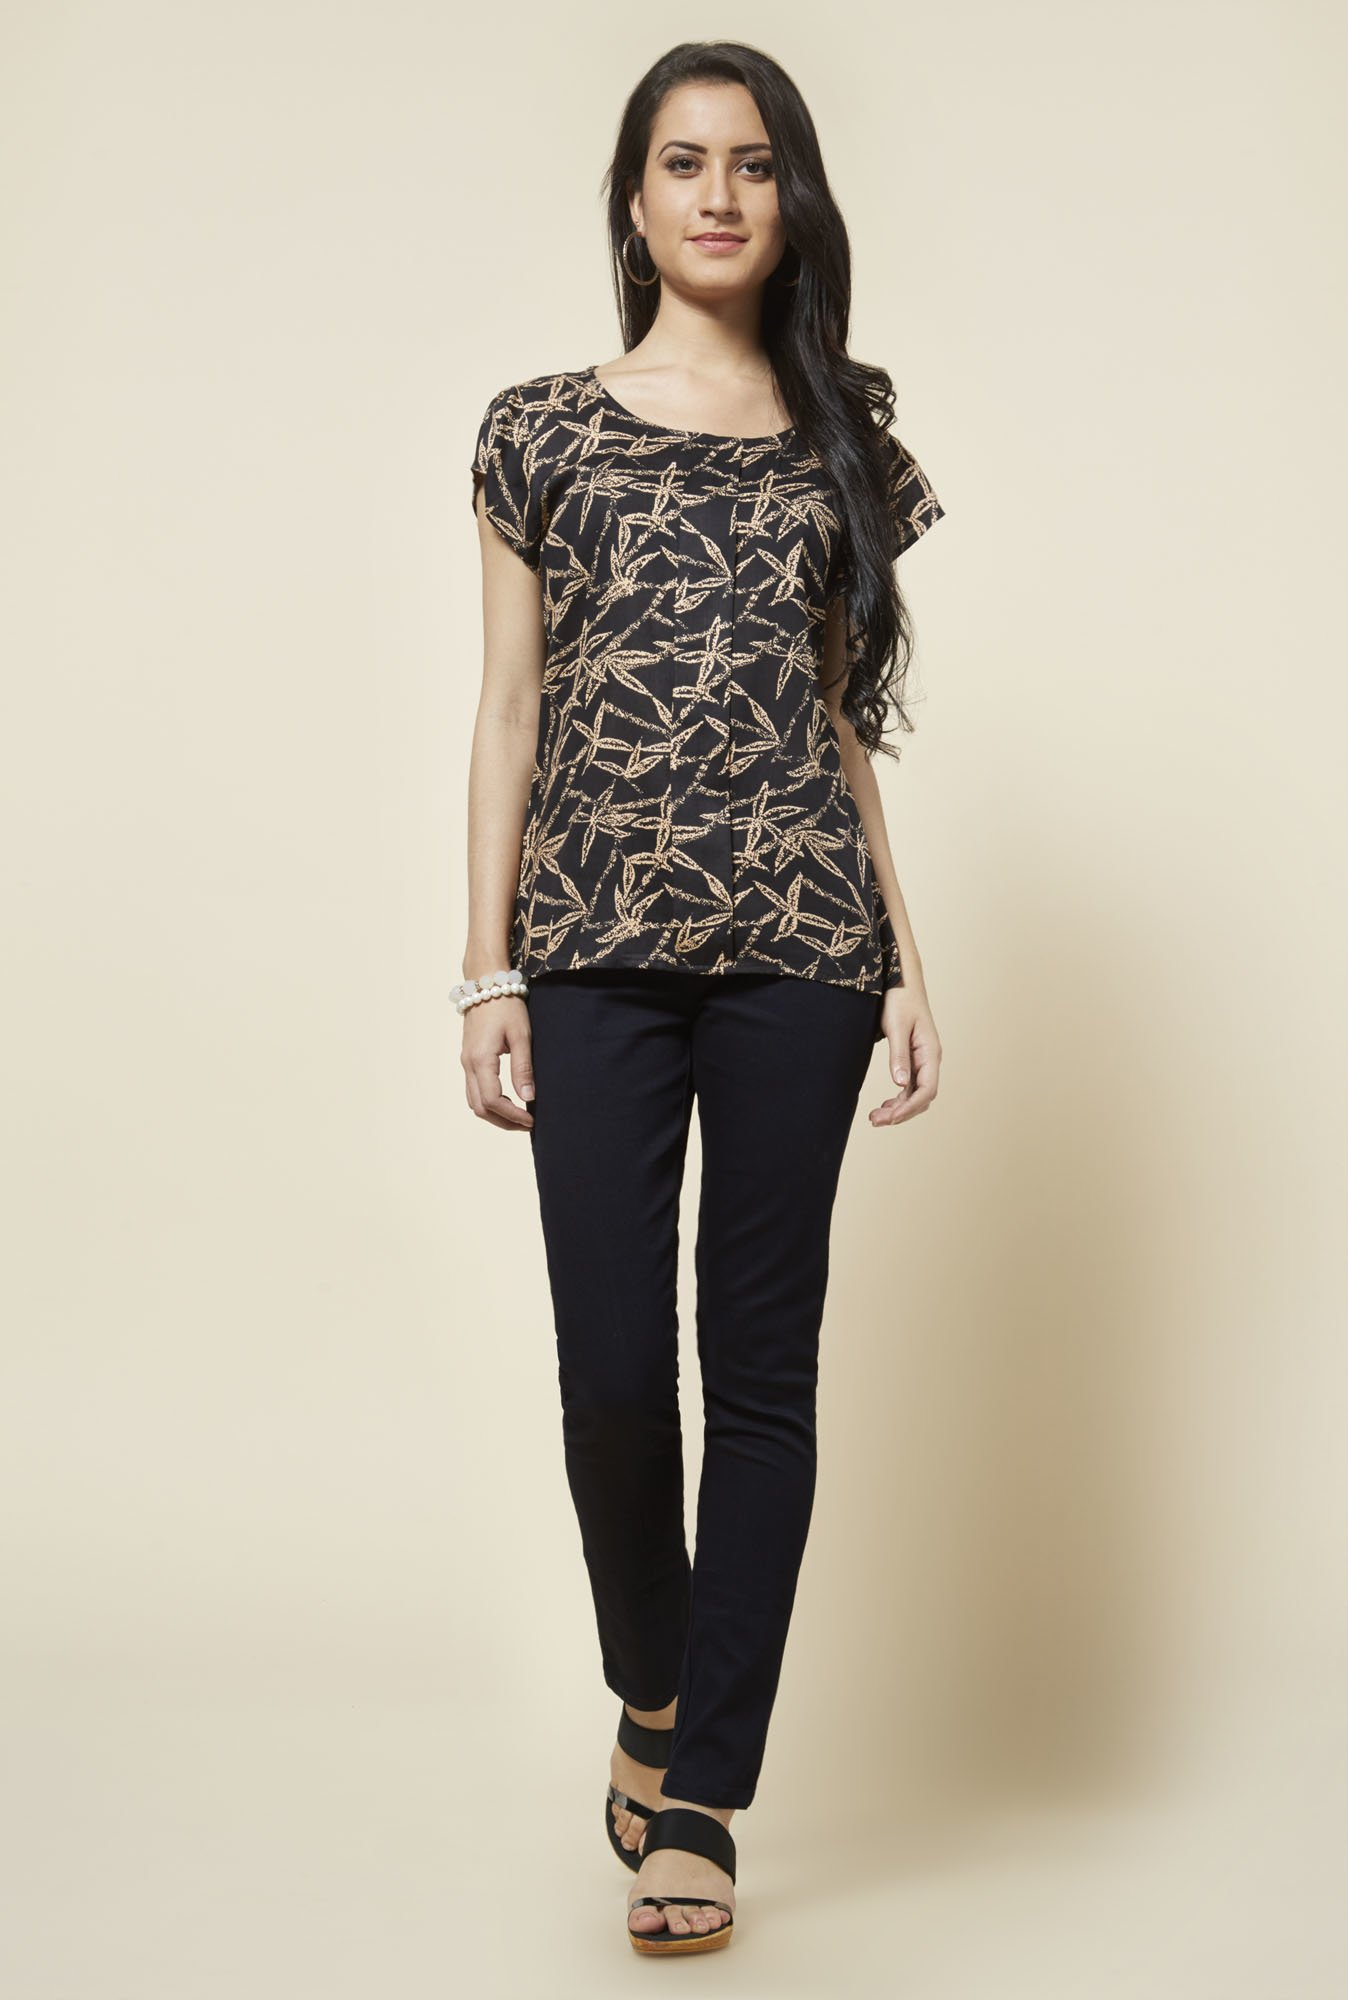 Zudio Black Kathy Printed Top